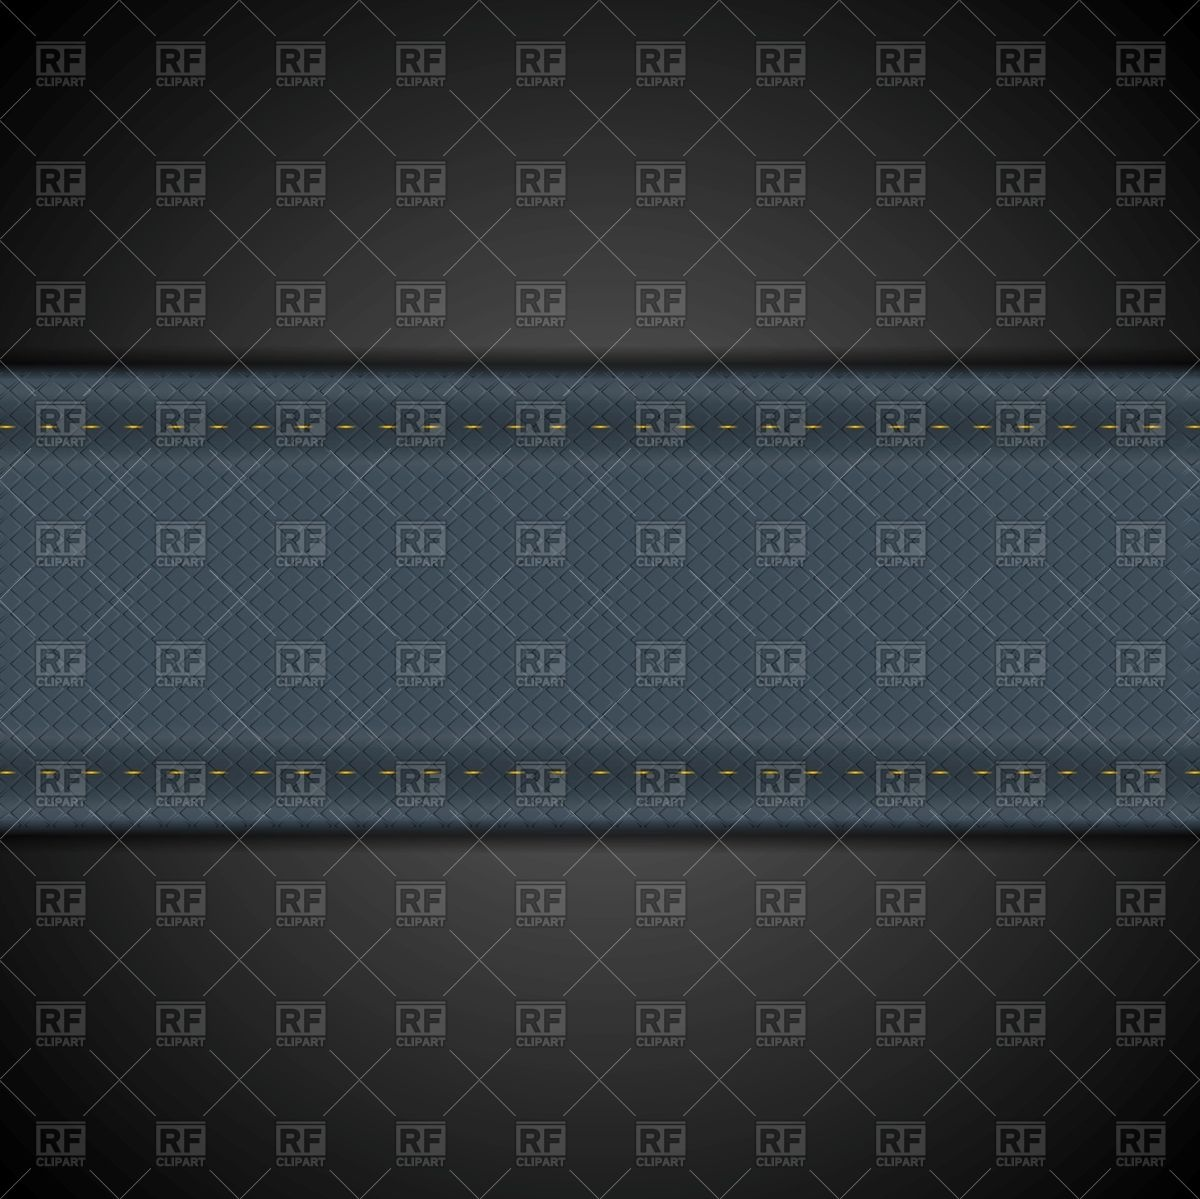 Abstract dark background with textile texture Vector Image #67757.